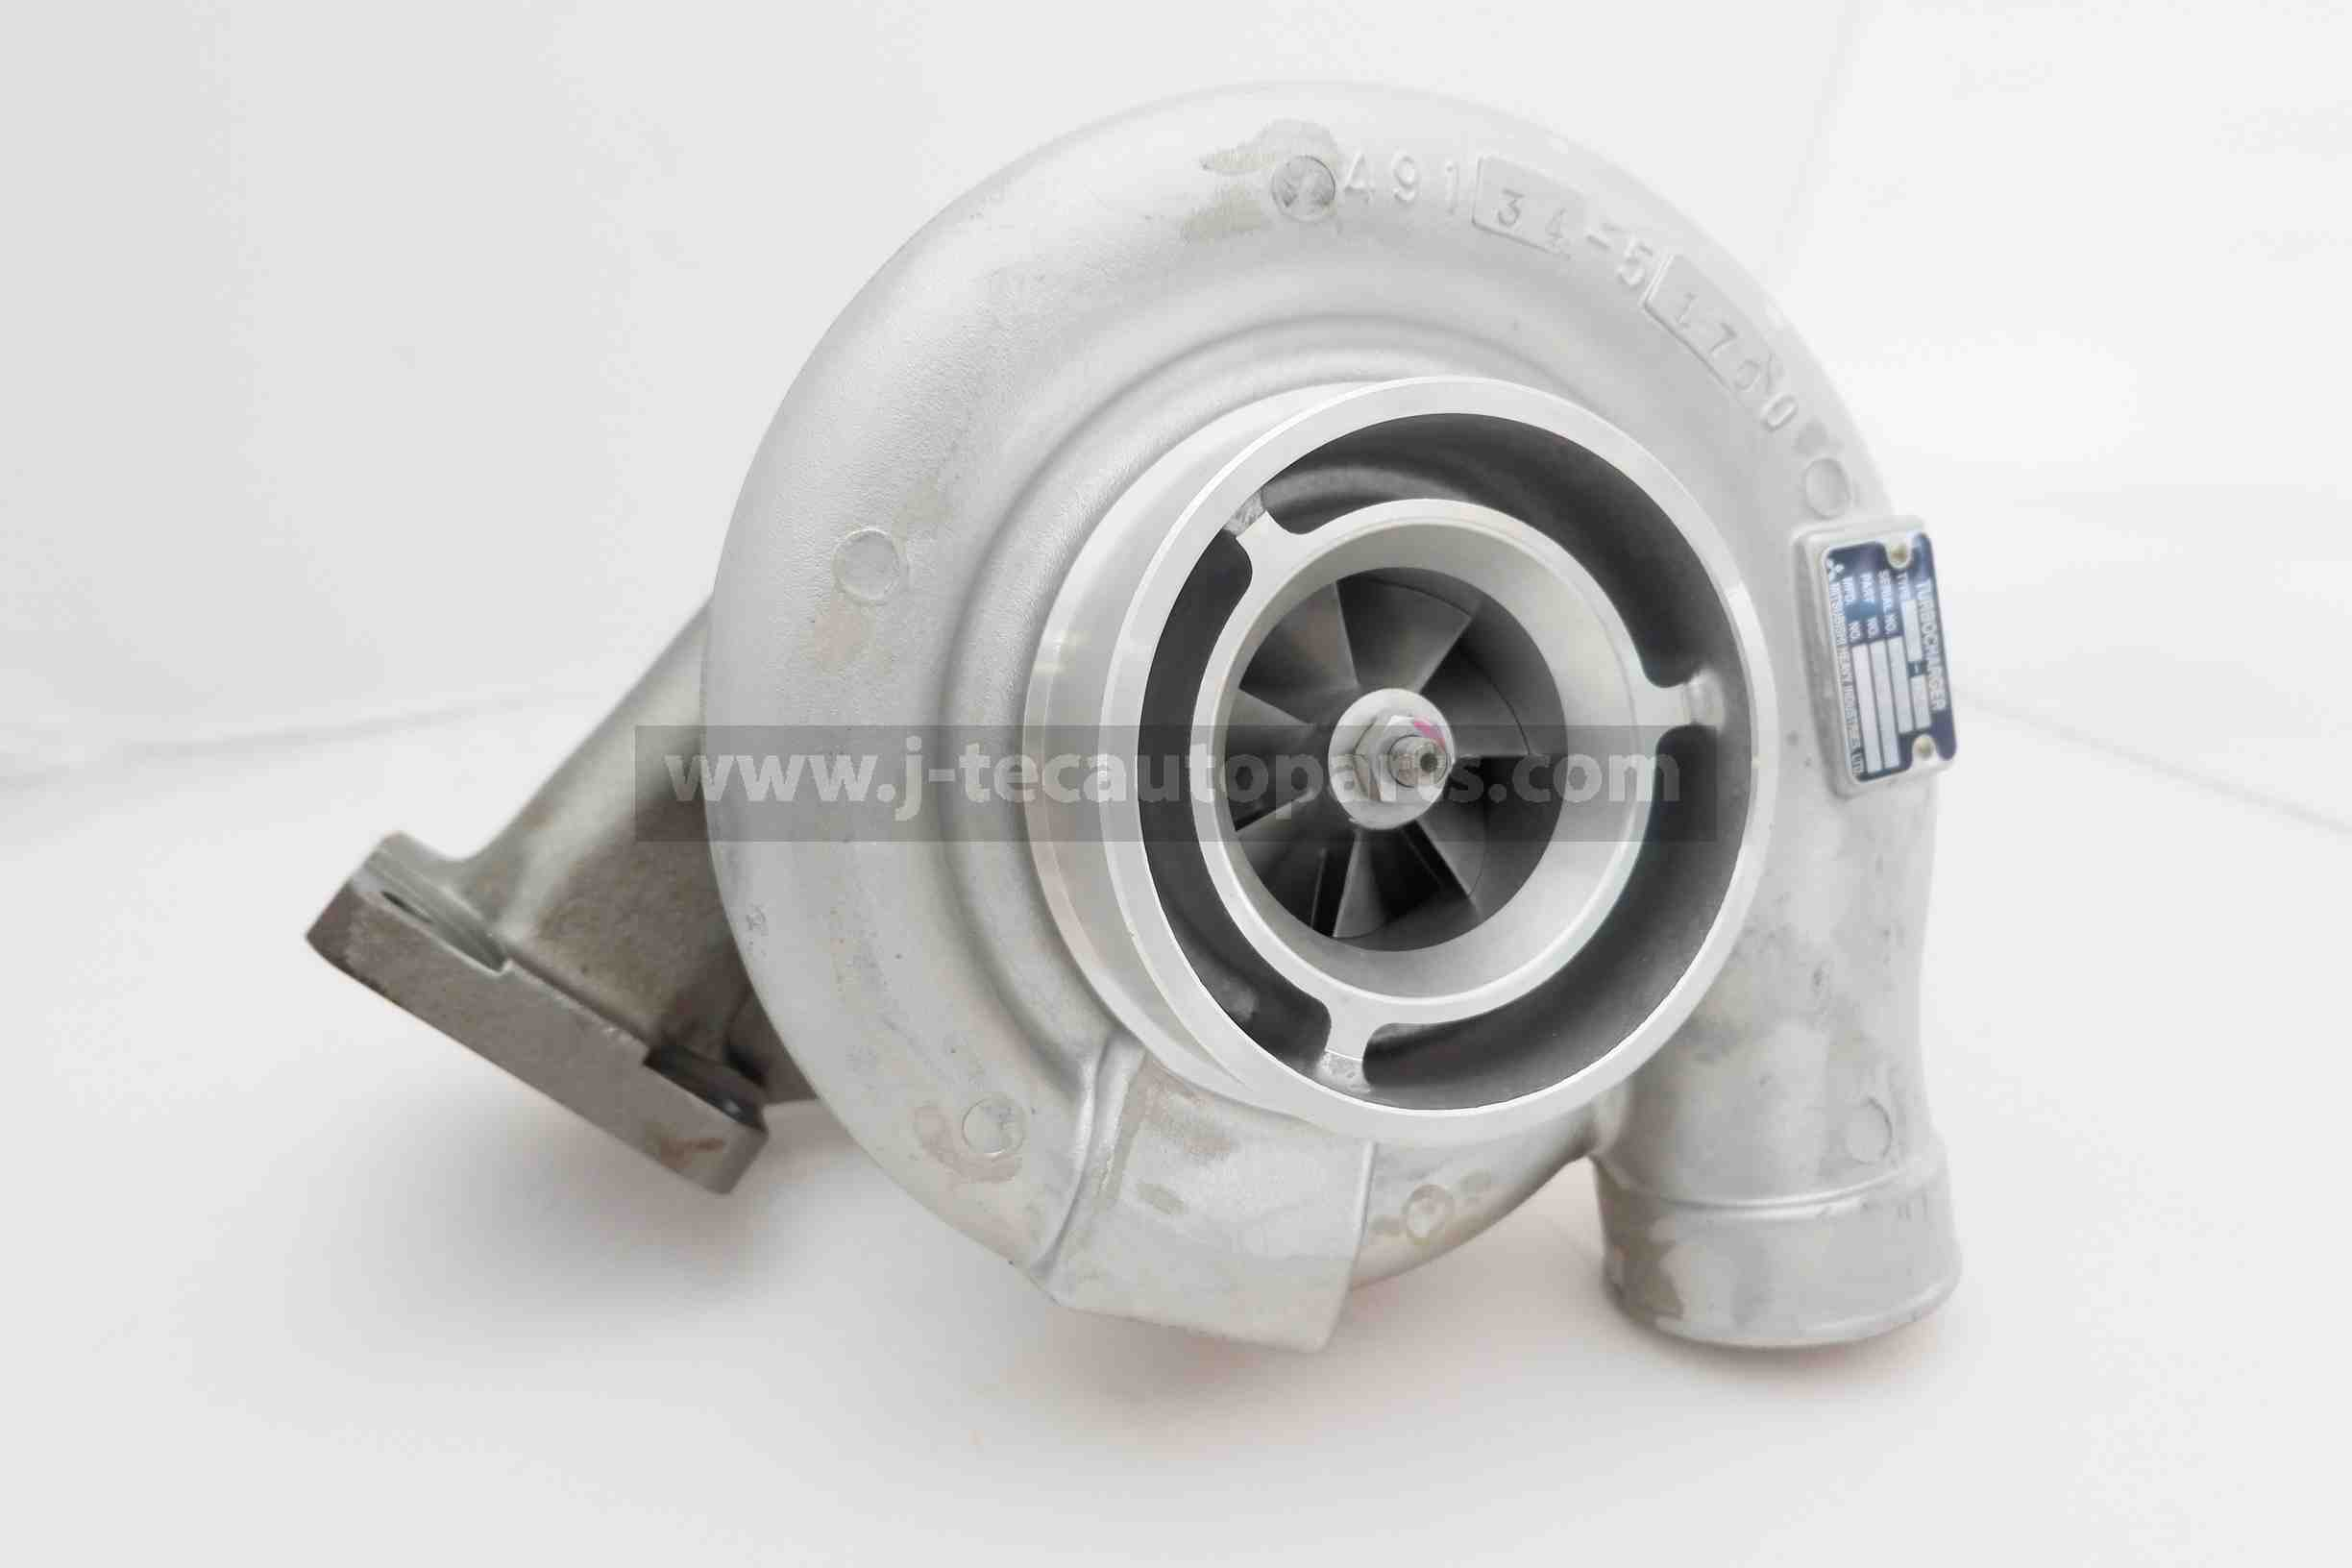 MITSUBISHI TURBOCHARGER > ISUZU | Turbo JTEC